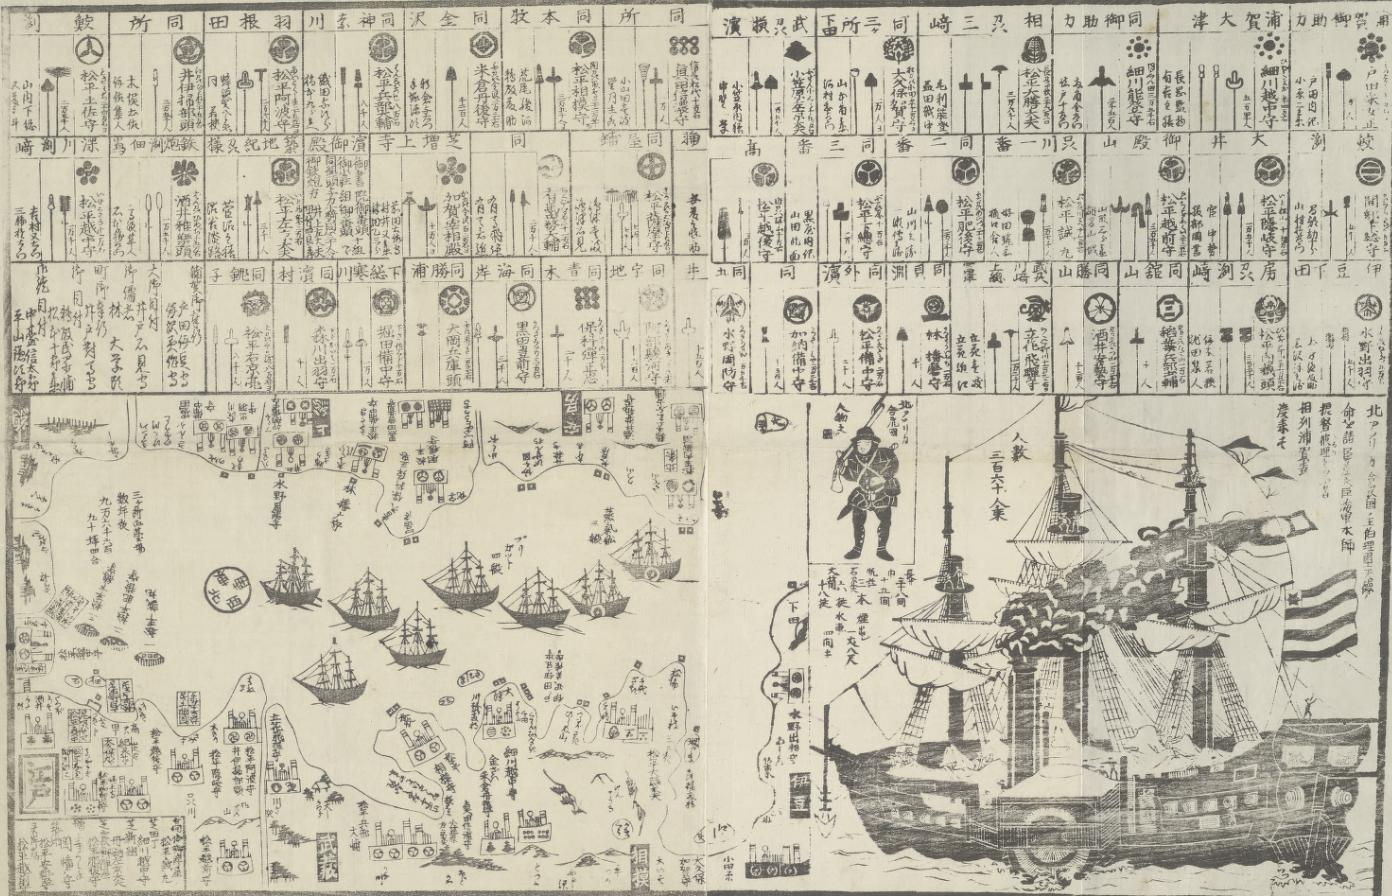 Japanese print relating Perry's visit, 1854. The paddlewheel steamer depicted would be either the USS Mississippi (Commodore Perry's flagship), or the USS Susquehanna- the only two paddlewheels on Perry's first visit to Japan.